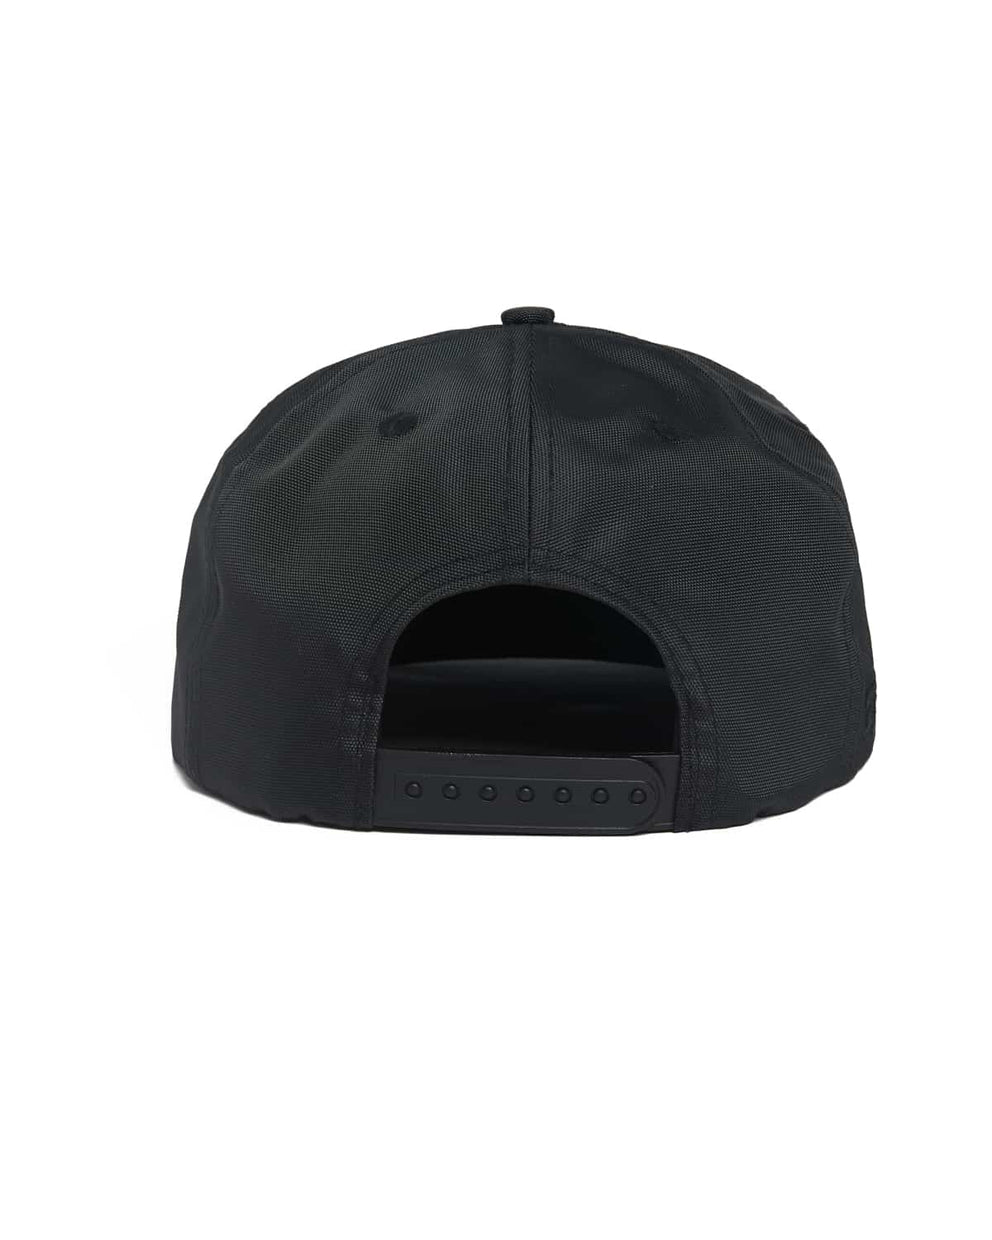 Excision 'Sliced' Patent Leather Visor Ballistic Snapback - Black